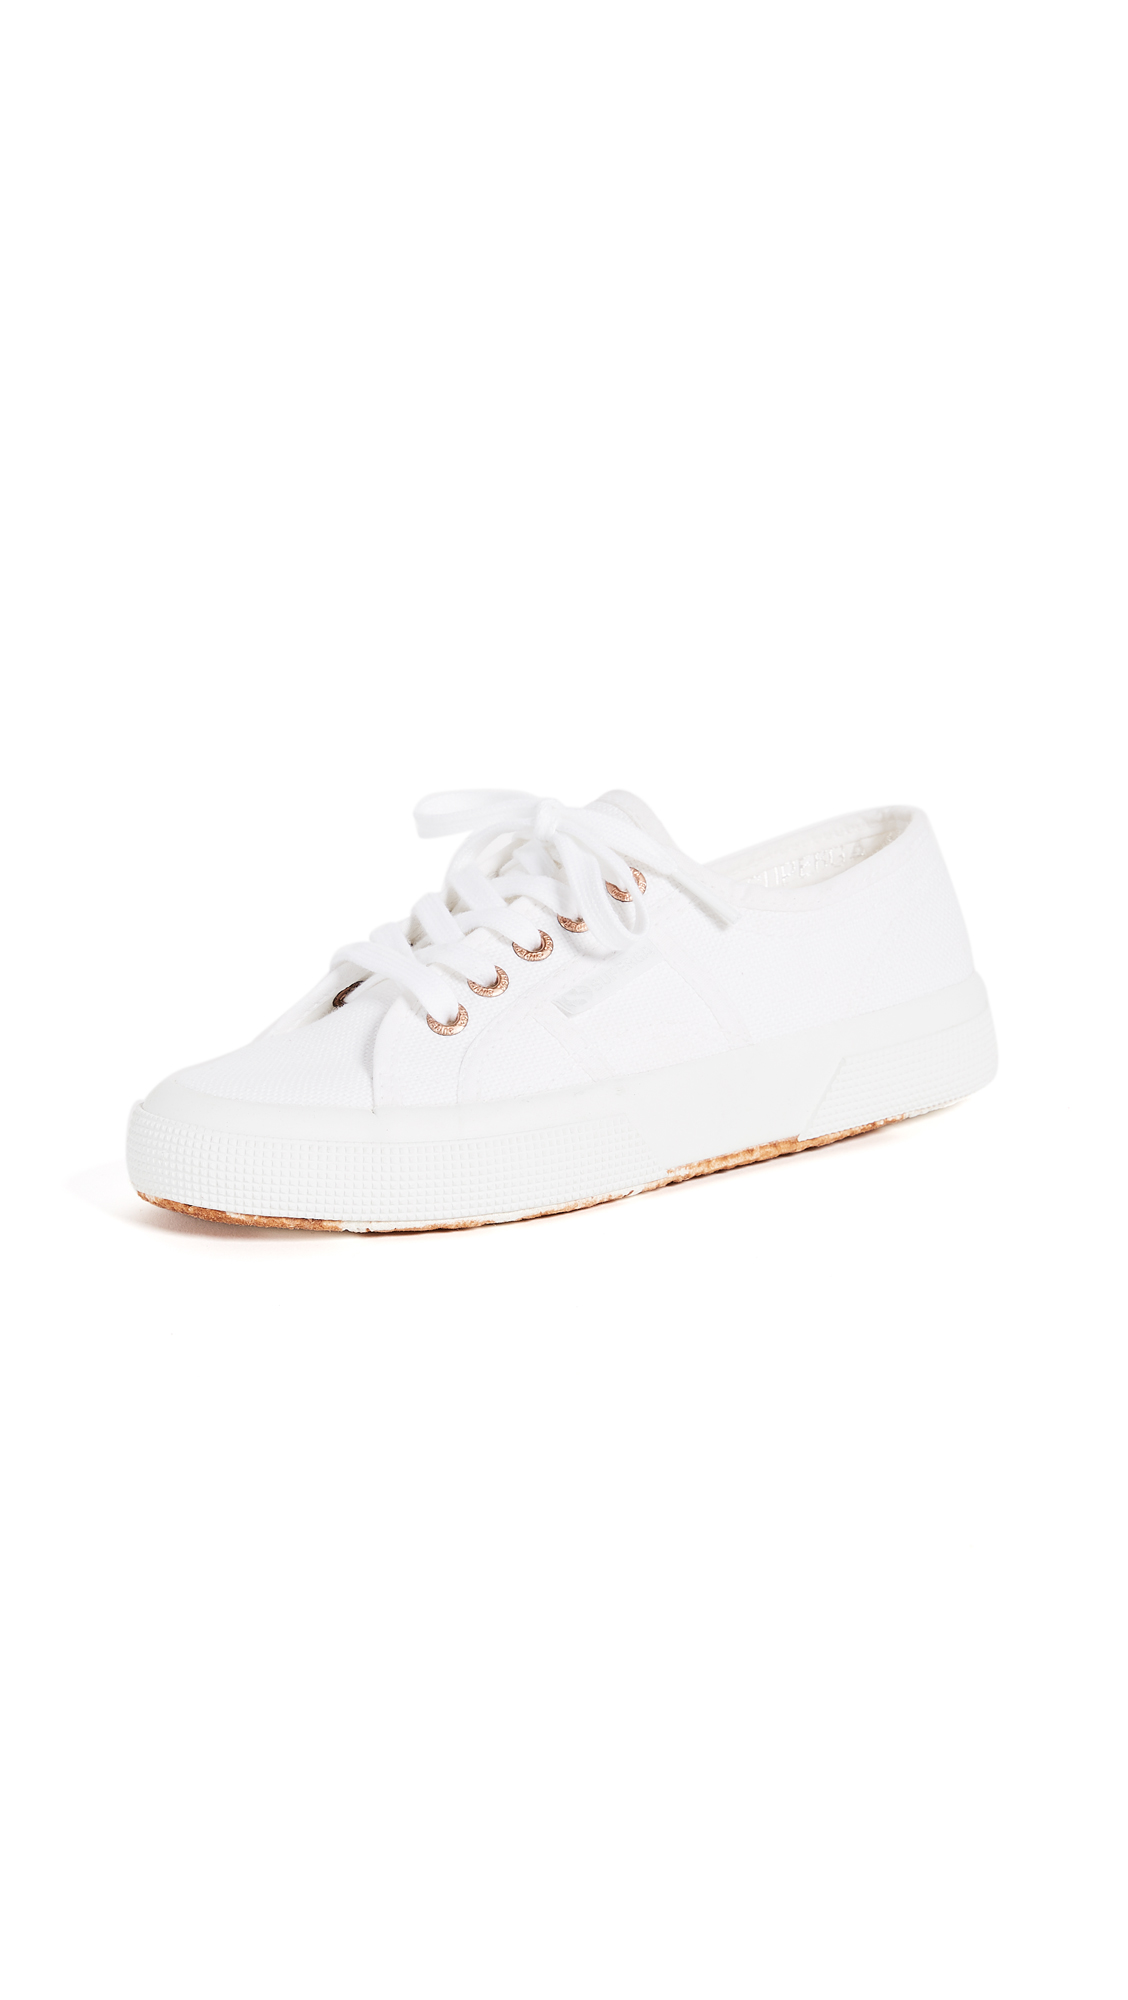 Superga 2750 Cotu Classic Sneakers - White/Rose